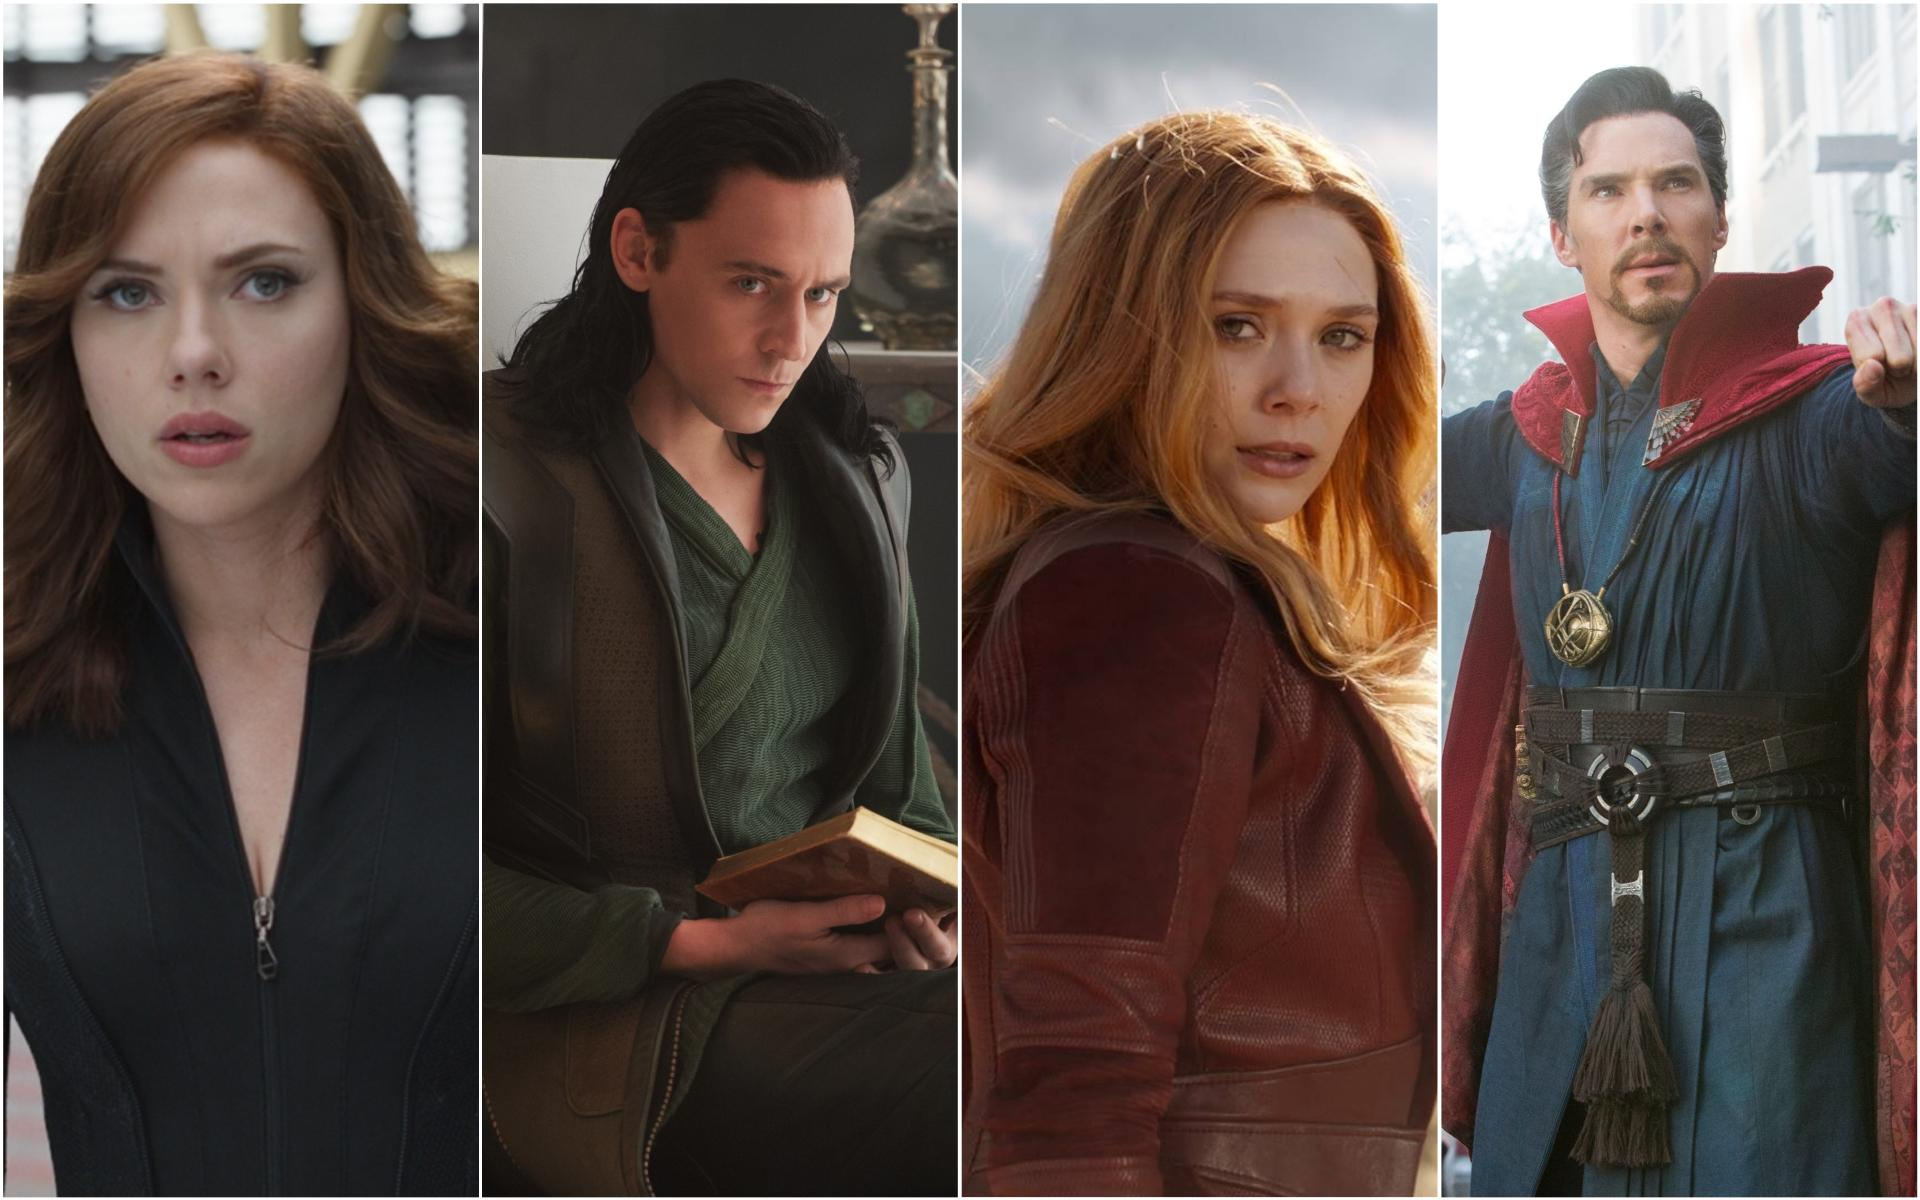 Marvel Phase 4 release dates confirmed